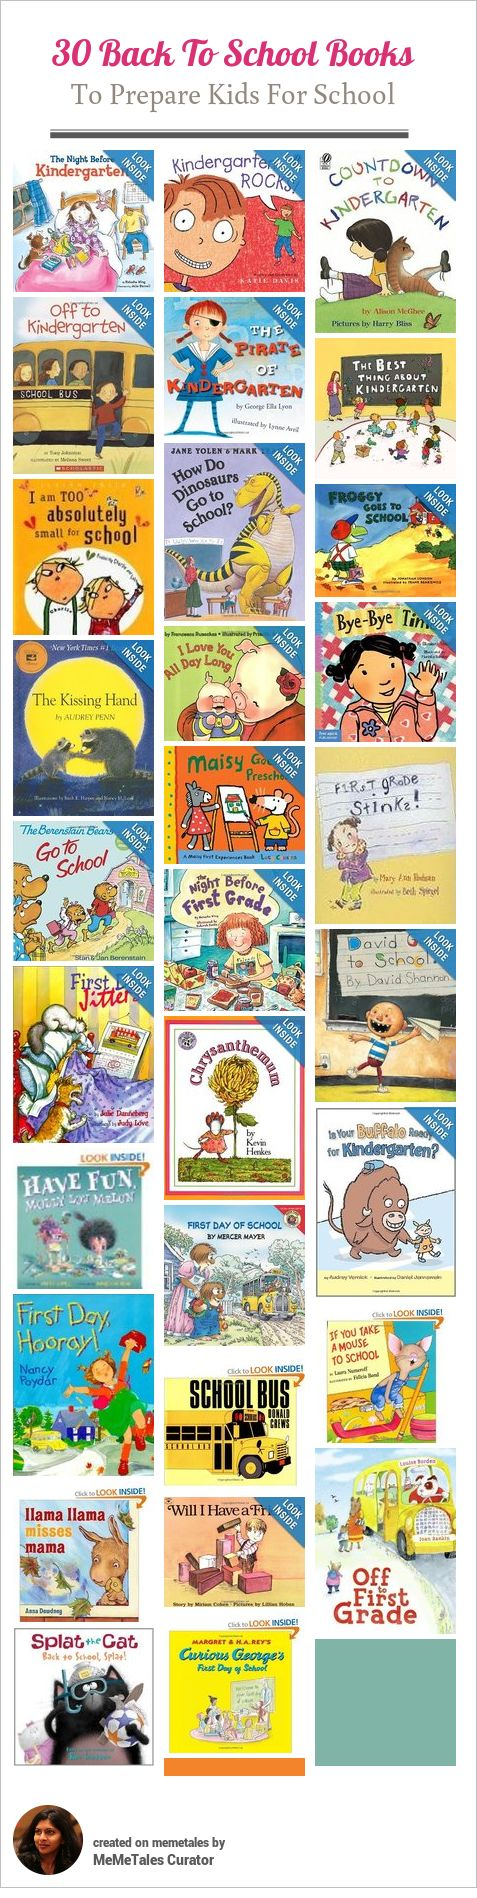 30 Back To School Books Tried, tested and loved. While it is important to read books about school to mentally prepare kids, make sure to read books that talk about friendship, separation from loved ones and more. It will give kids a wonderful opportunity to share their fears and thoughts. The Kissing Hand is an all time favorite. Molly Lou Melon is a great book to help kids prepare to deal with unpleasant situations in school.